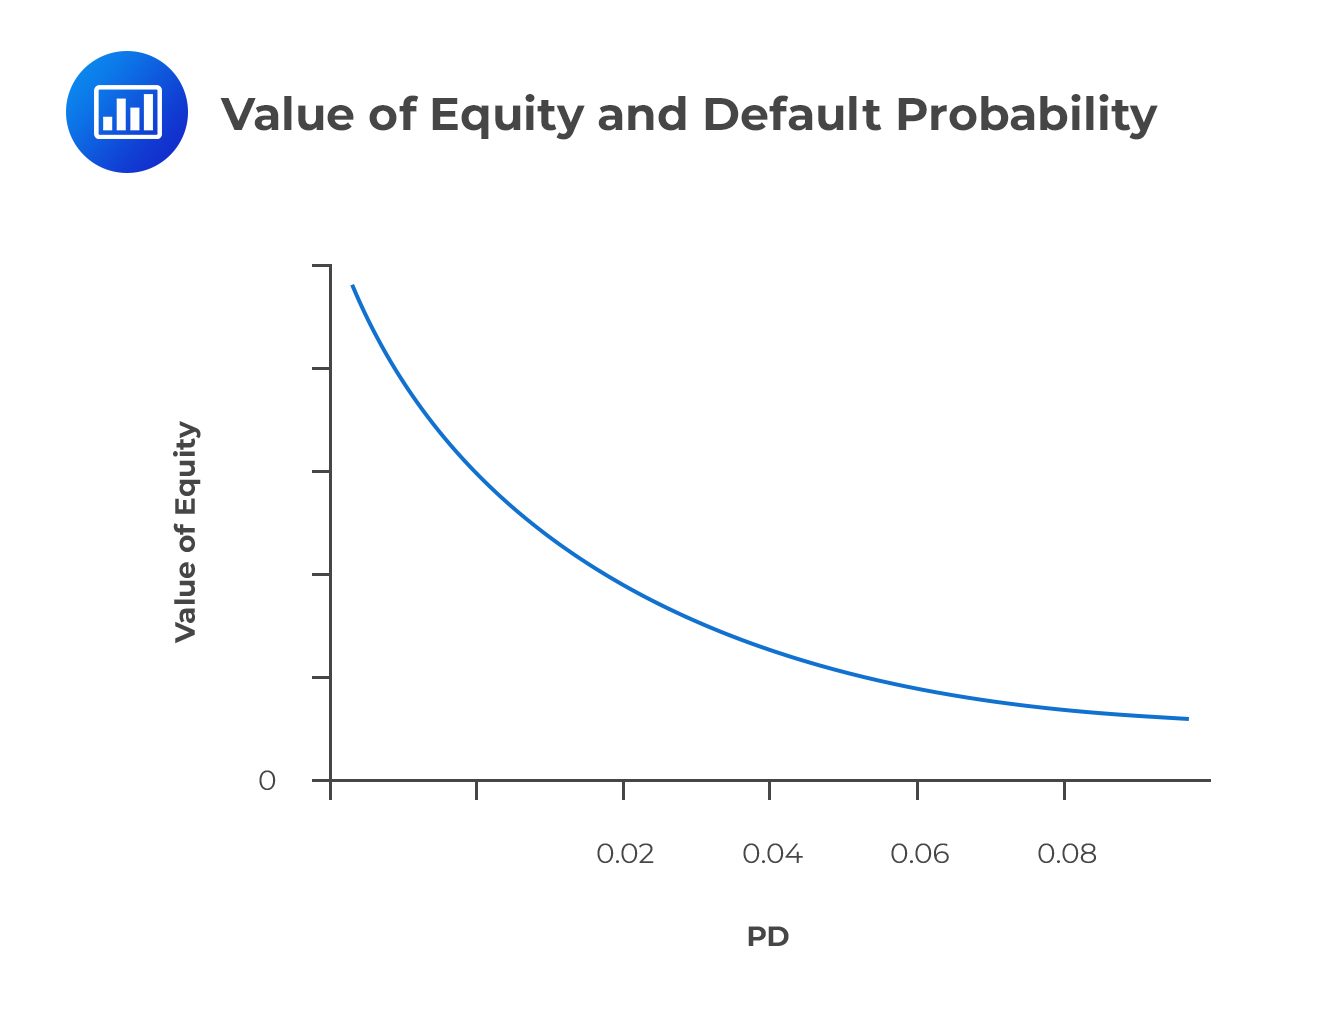 Value of Equity and Default Probability